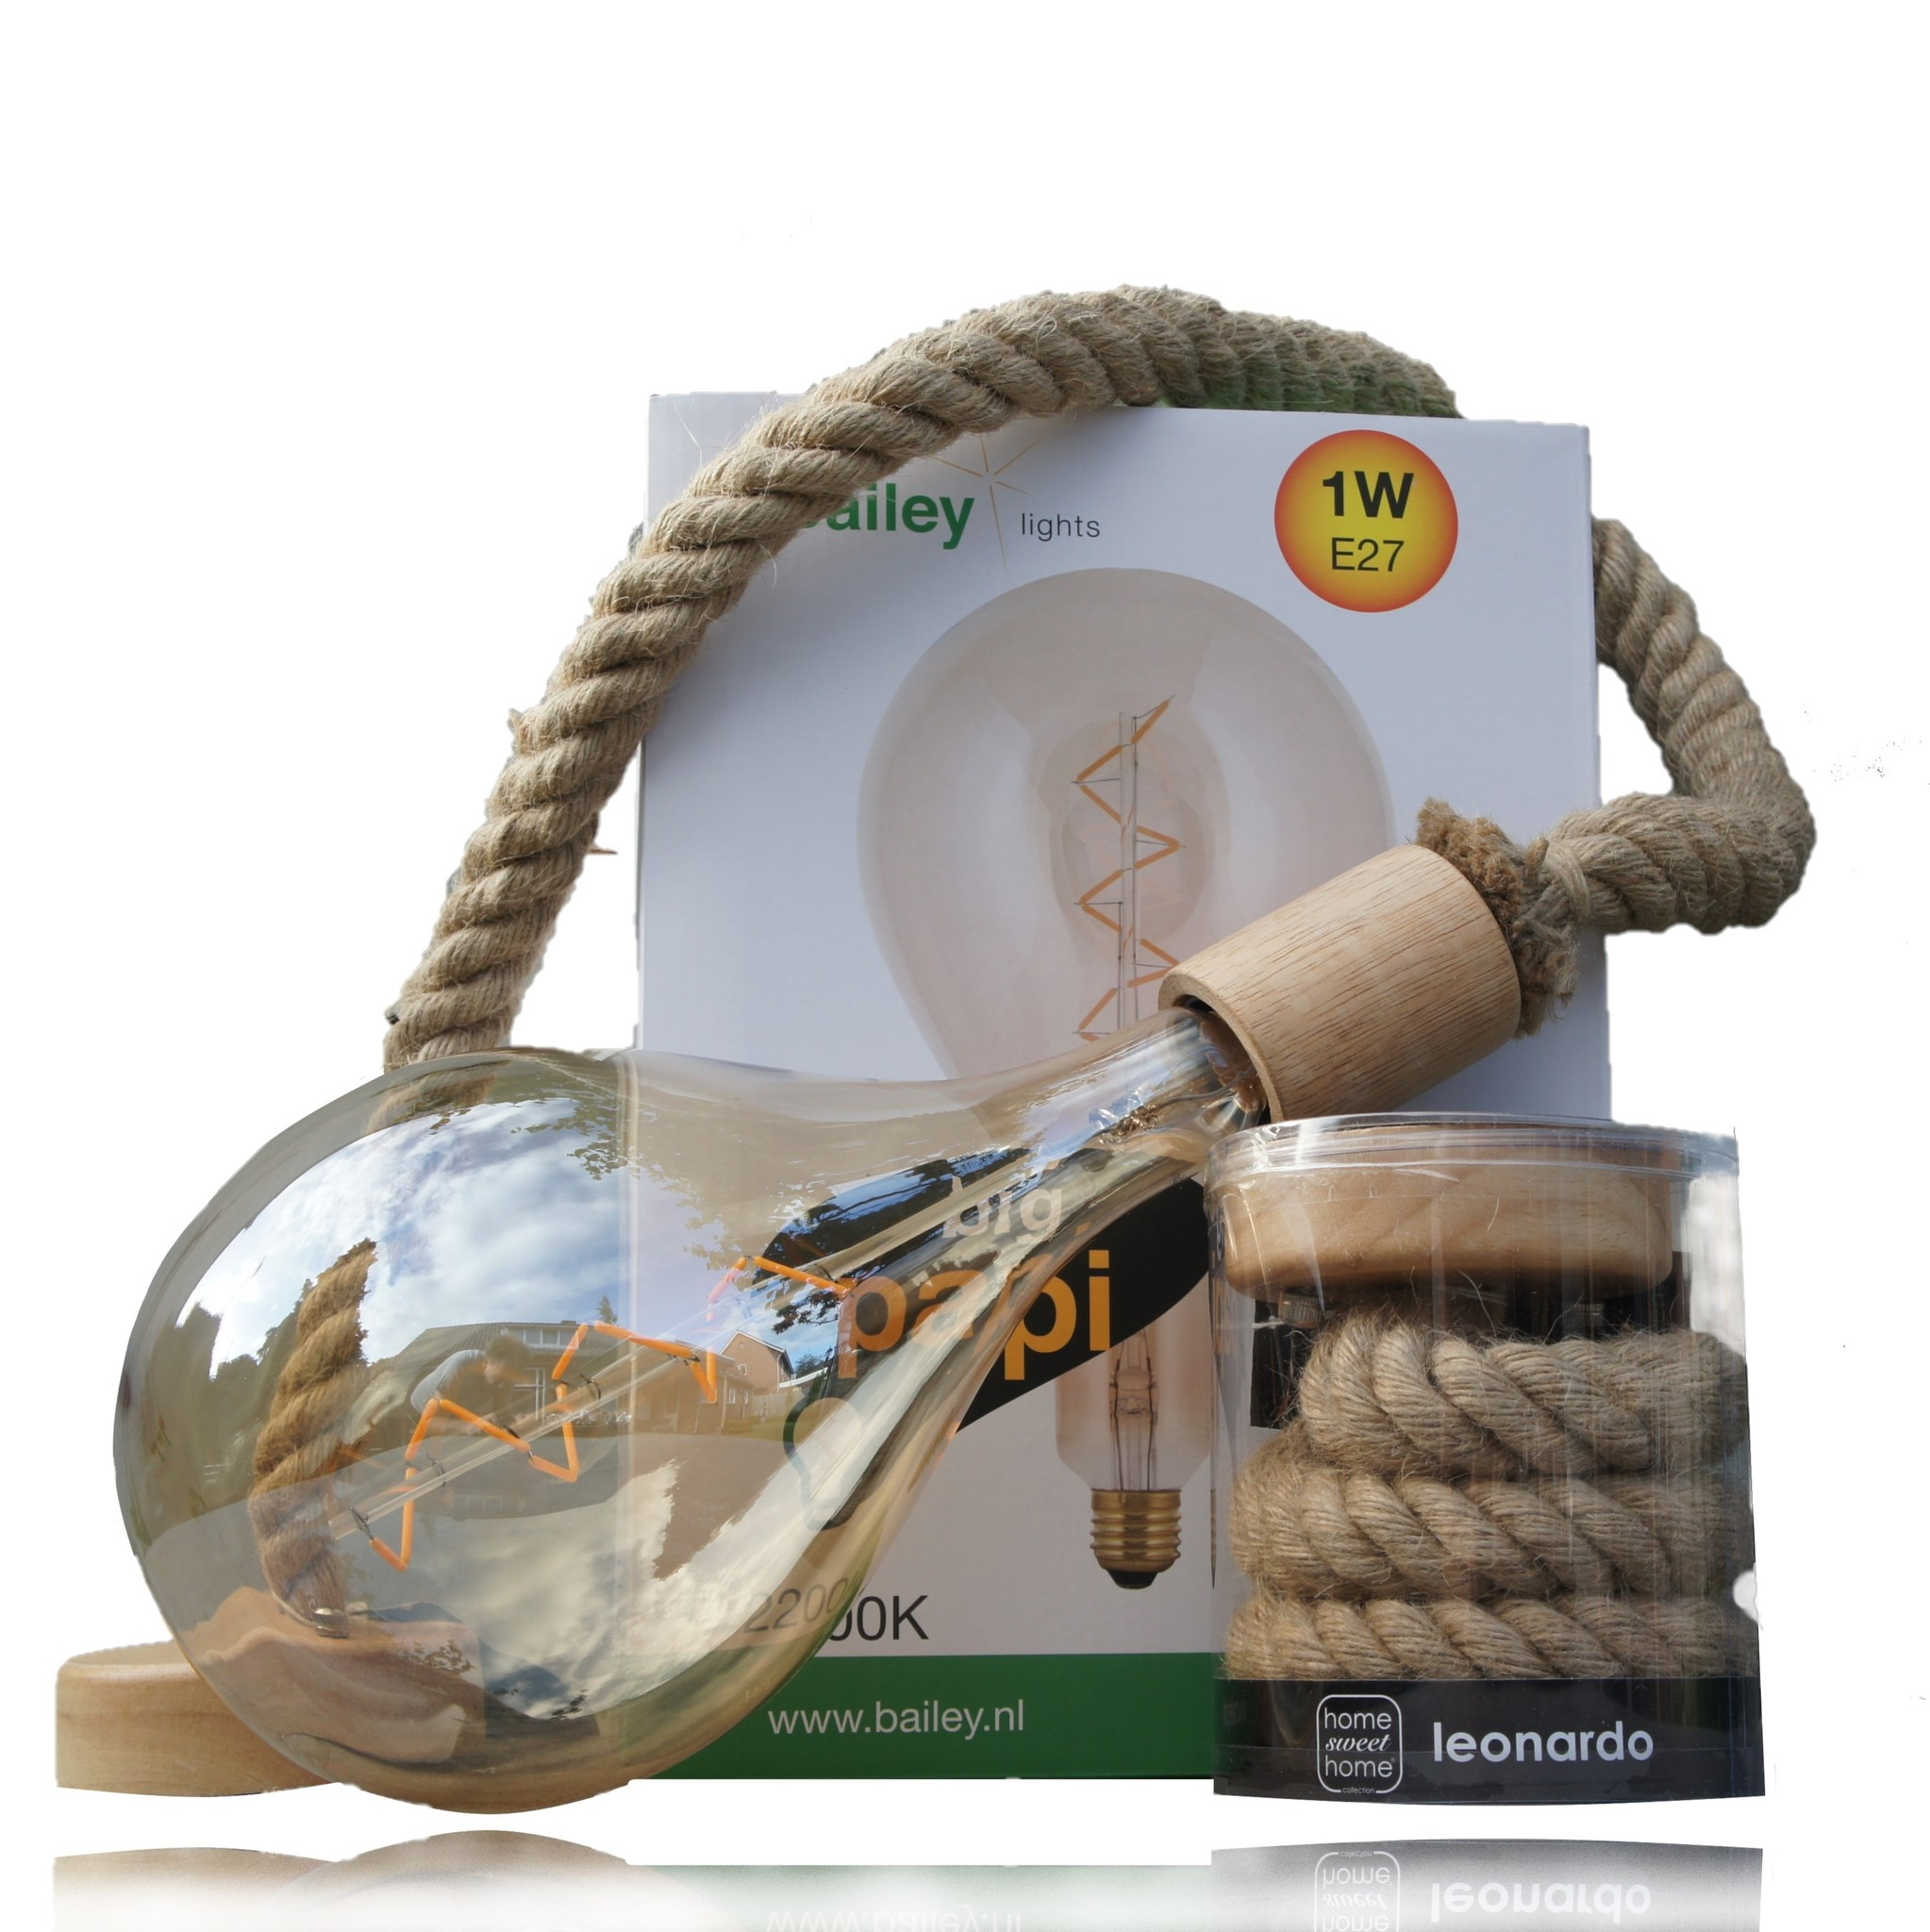 Touwlamp Met Xxl Led Lamp 1 Watt Rimisa Sfeer En Decoratie